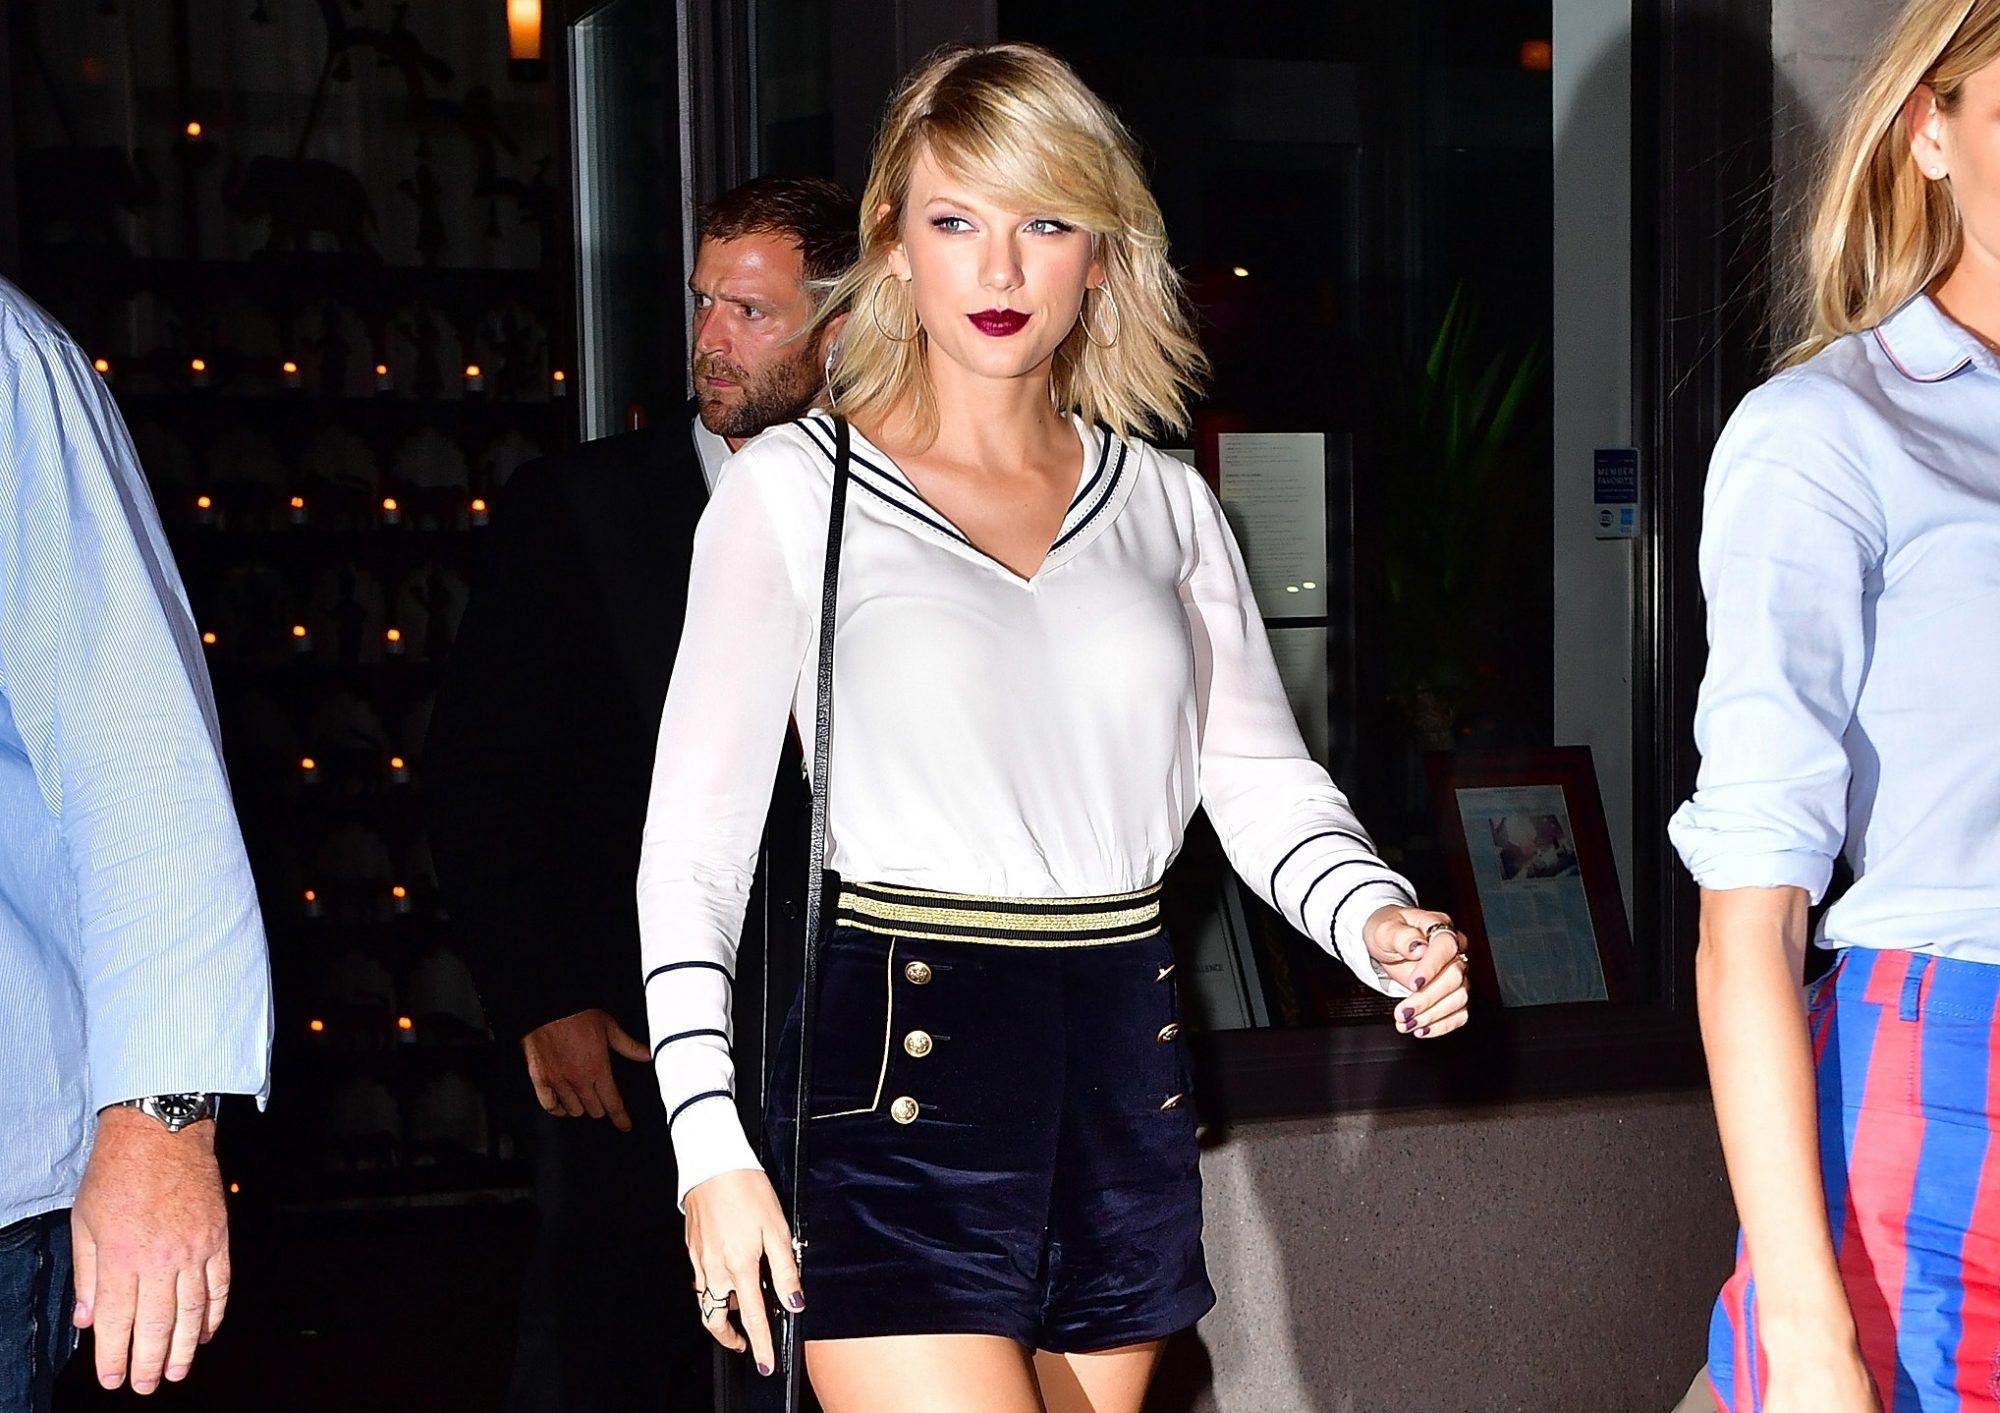 Picture of Taylor Swift Sailor Outfit